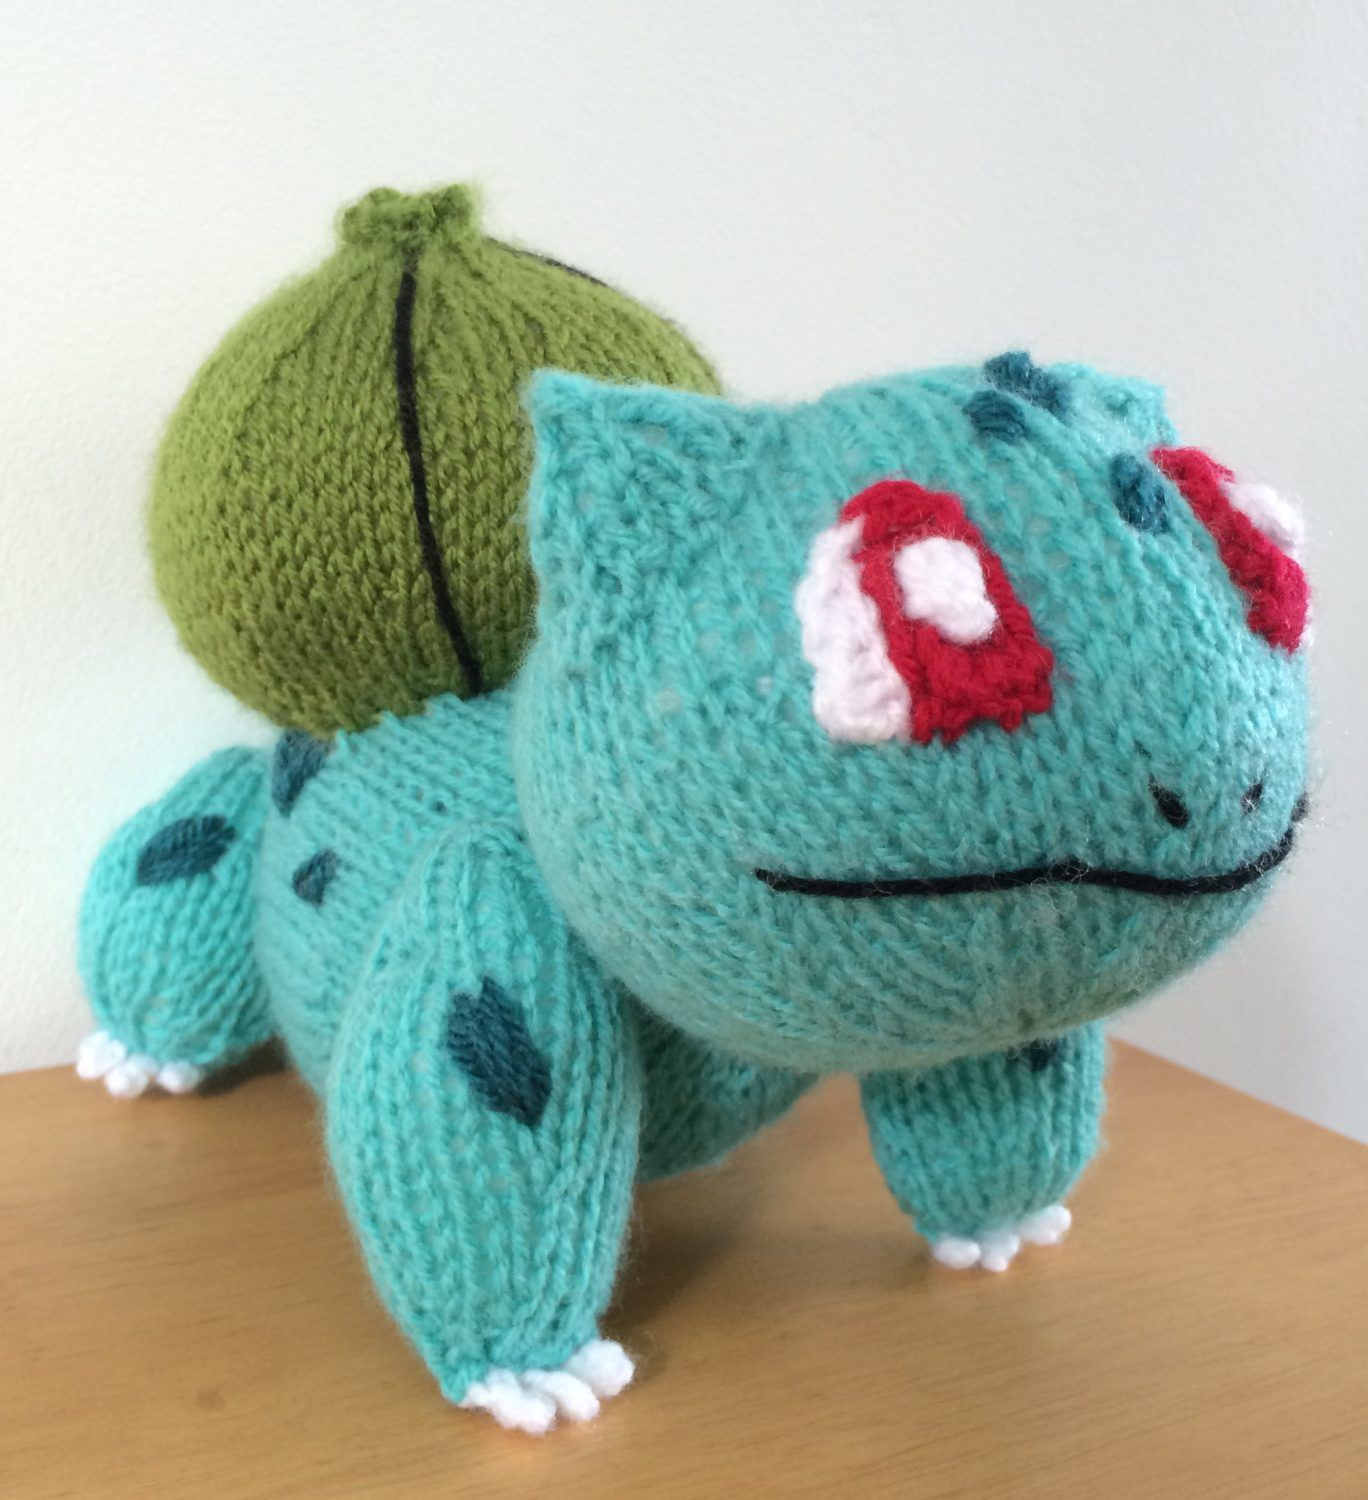 Gaming knitting patterns pokemon bulbasaur bulbasaur and gaming knitting patterns bankloansurffo Image collections